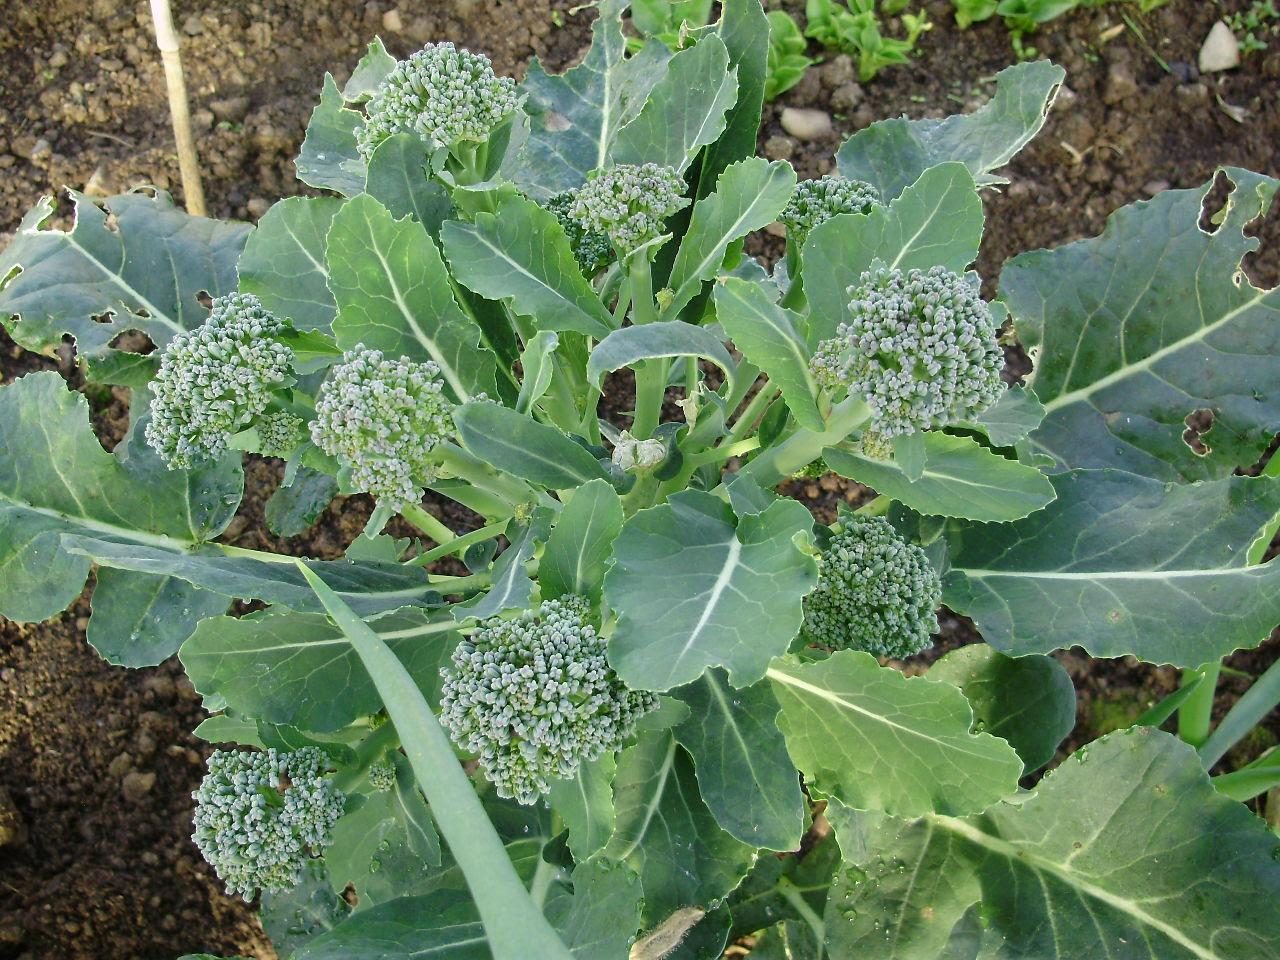 Calabrese broccoli 'Green Magic' making nice side shoots after central head cut